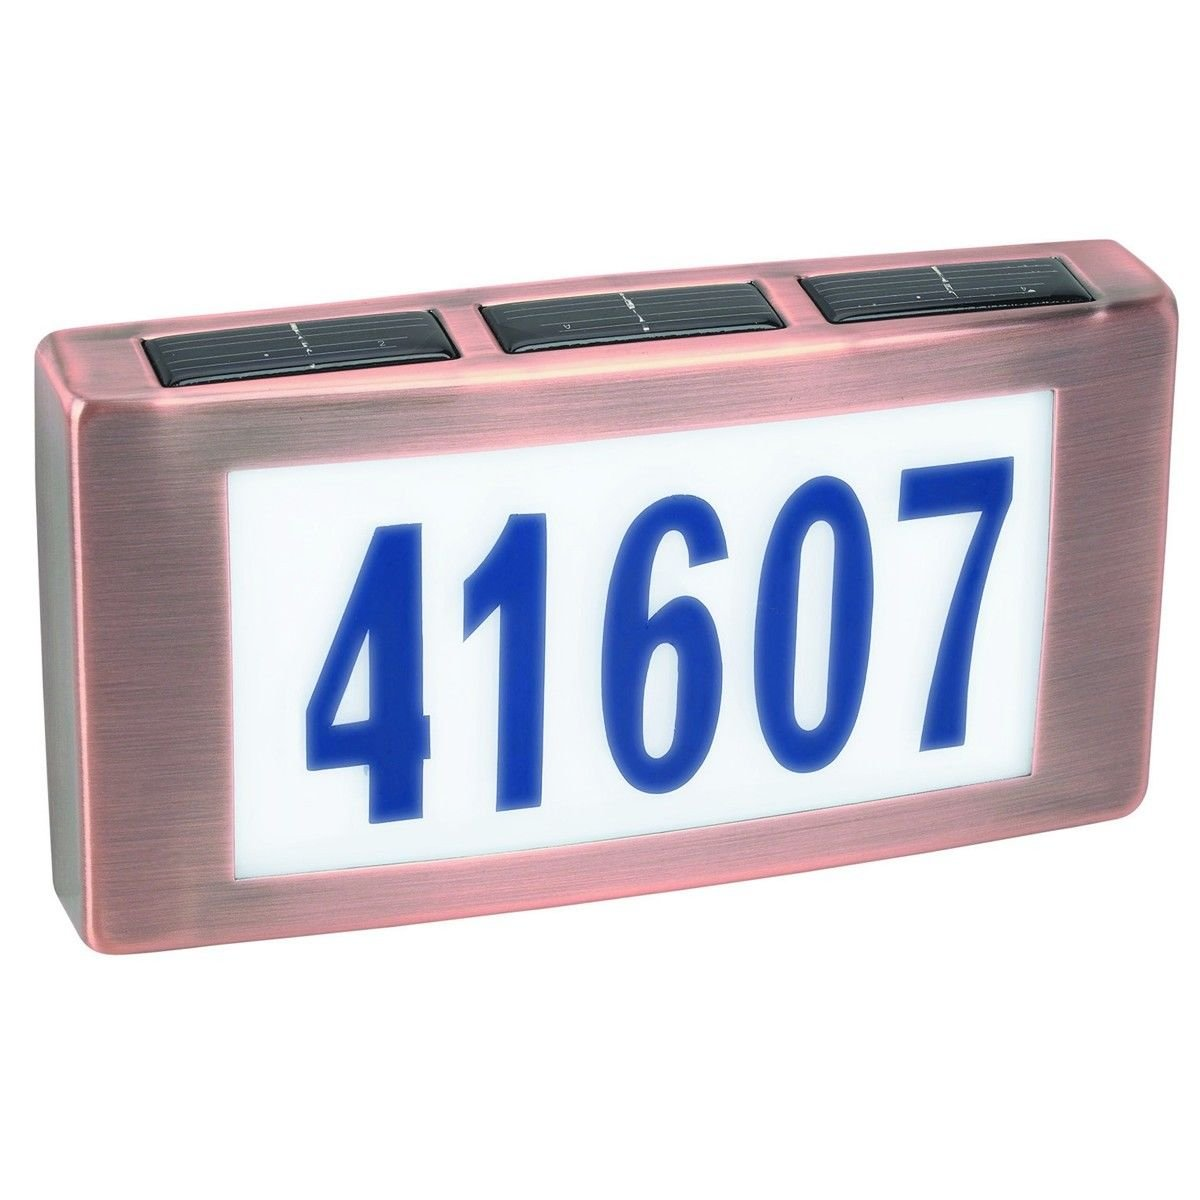 Solar LED Light House Street Address Driveway Numbers Plaque Sign Illuminated .#GG4346 43ETR98-Y222089